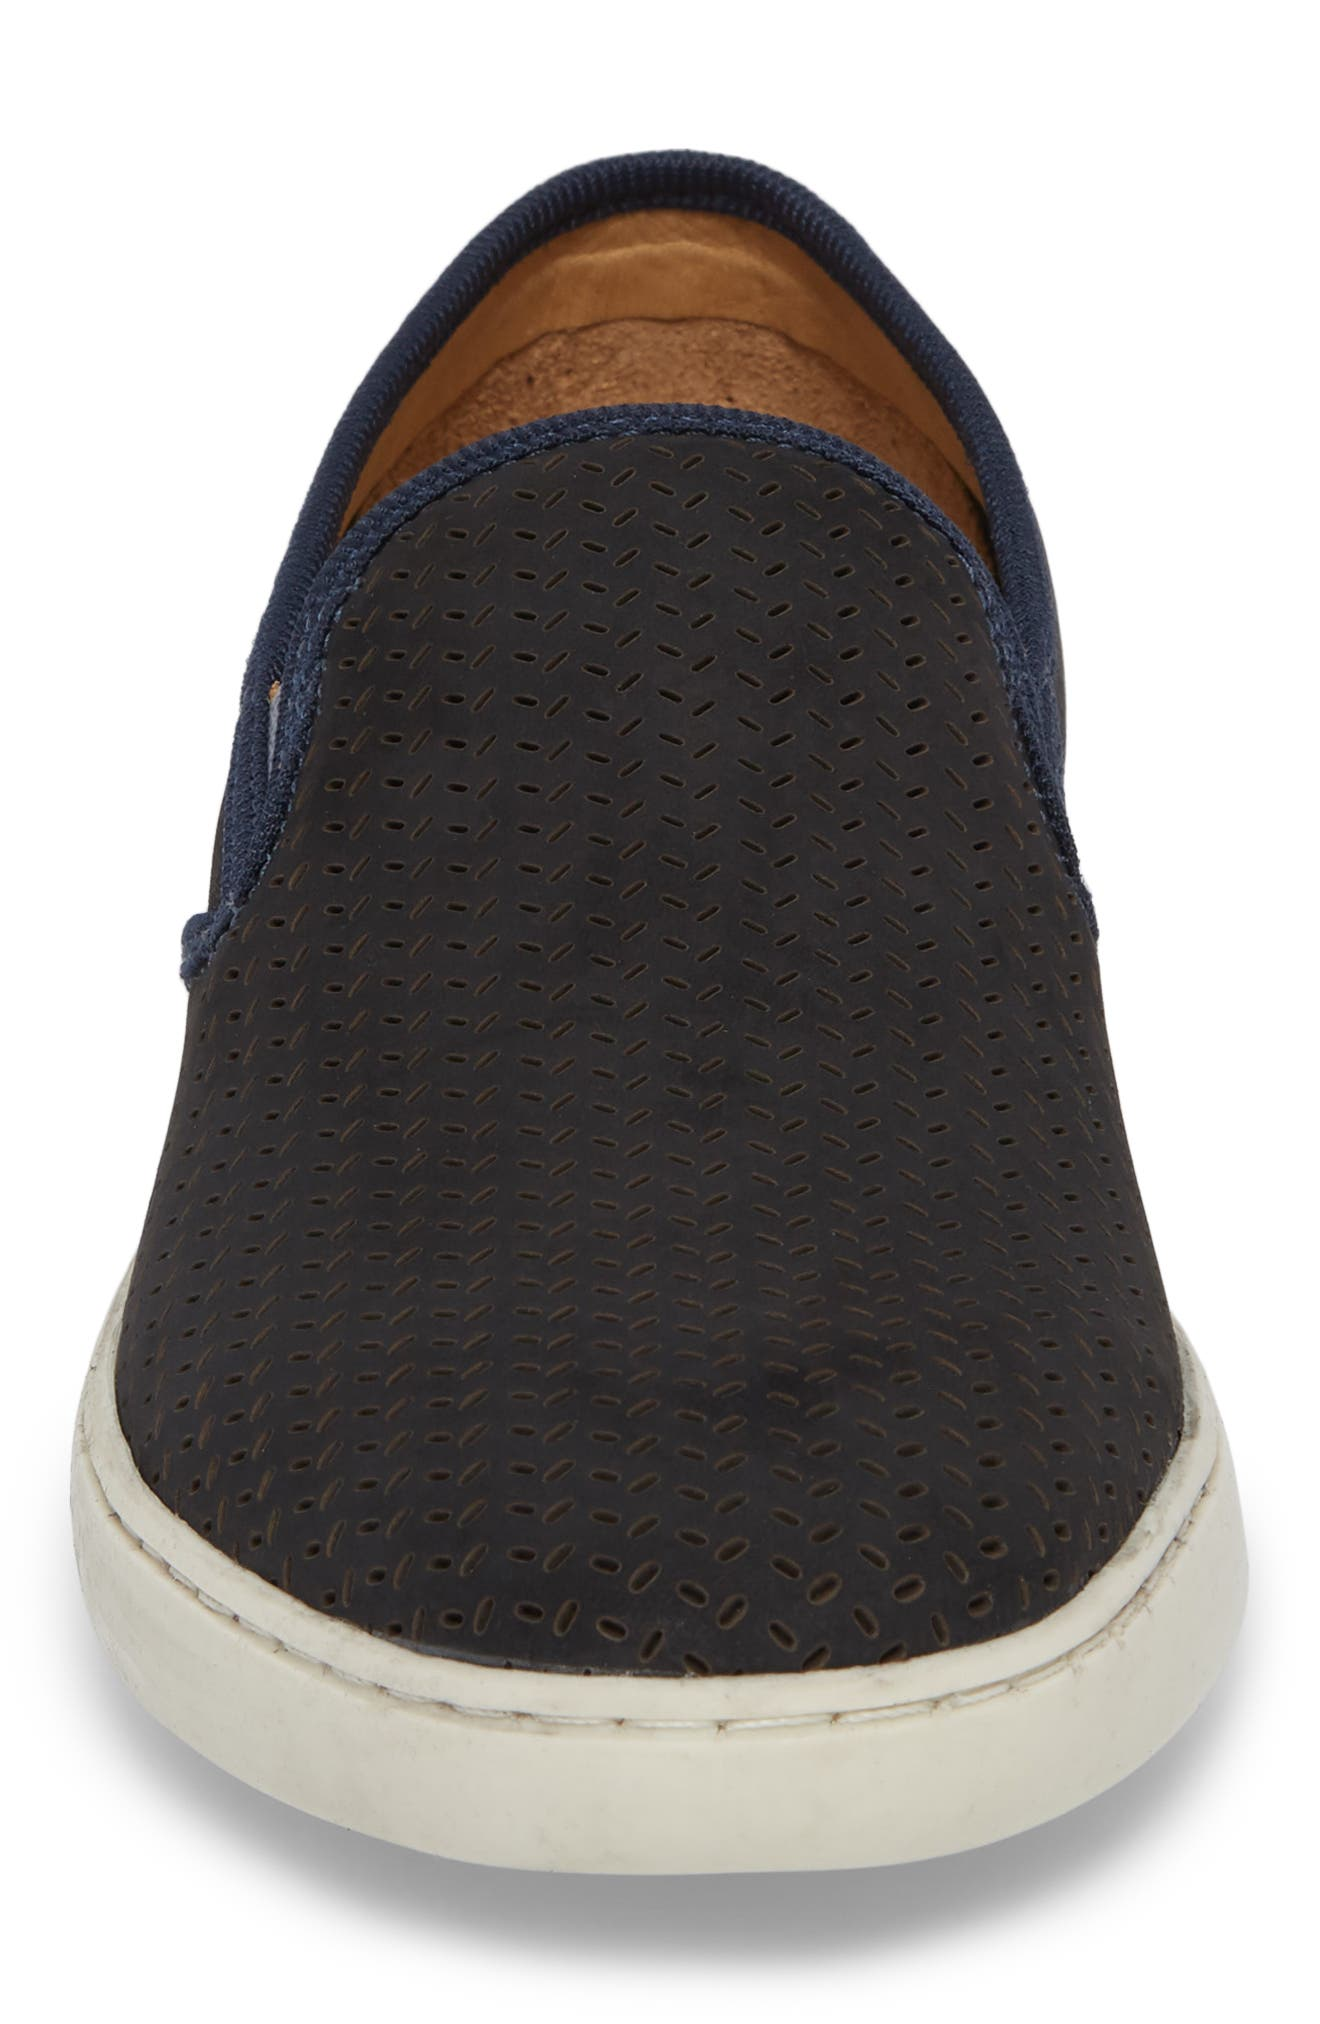 Malibu Perforated Loafer,                             Alternate thumbnail 4, color,                             Navy Nubuck